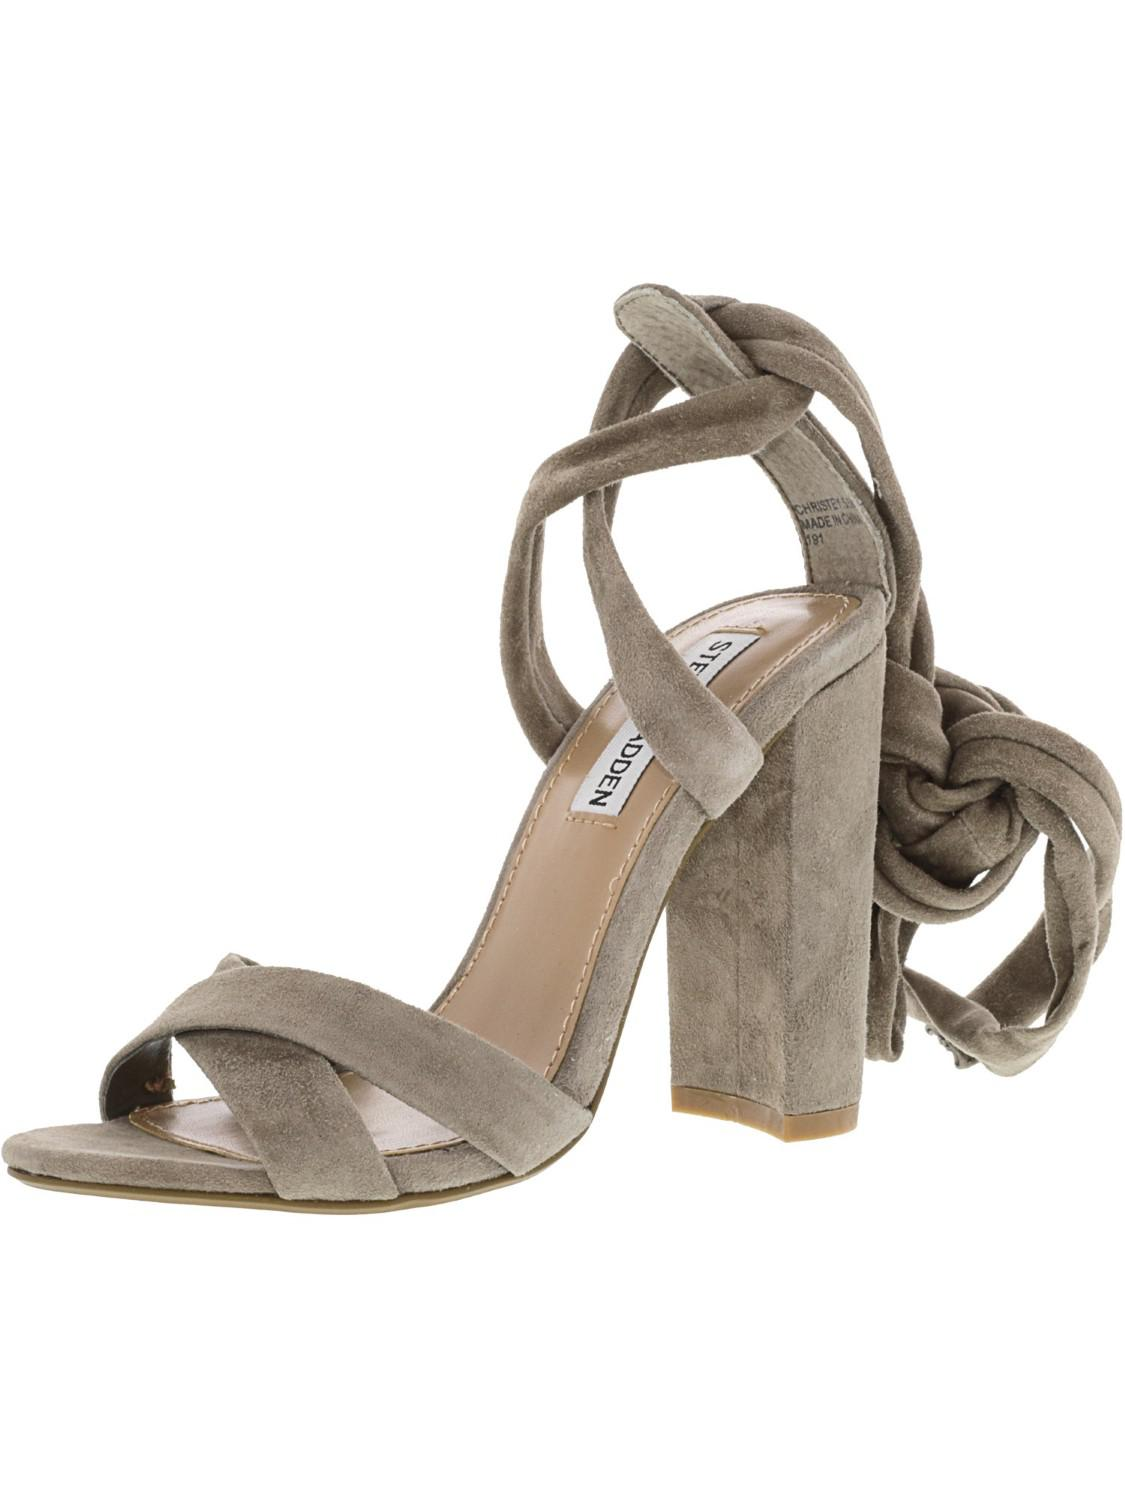 bcc1ac1d3a6 Lyst - Steve Madden Christey Suede Ankle-high Pump - 5.5m